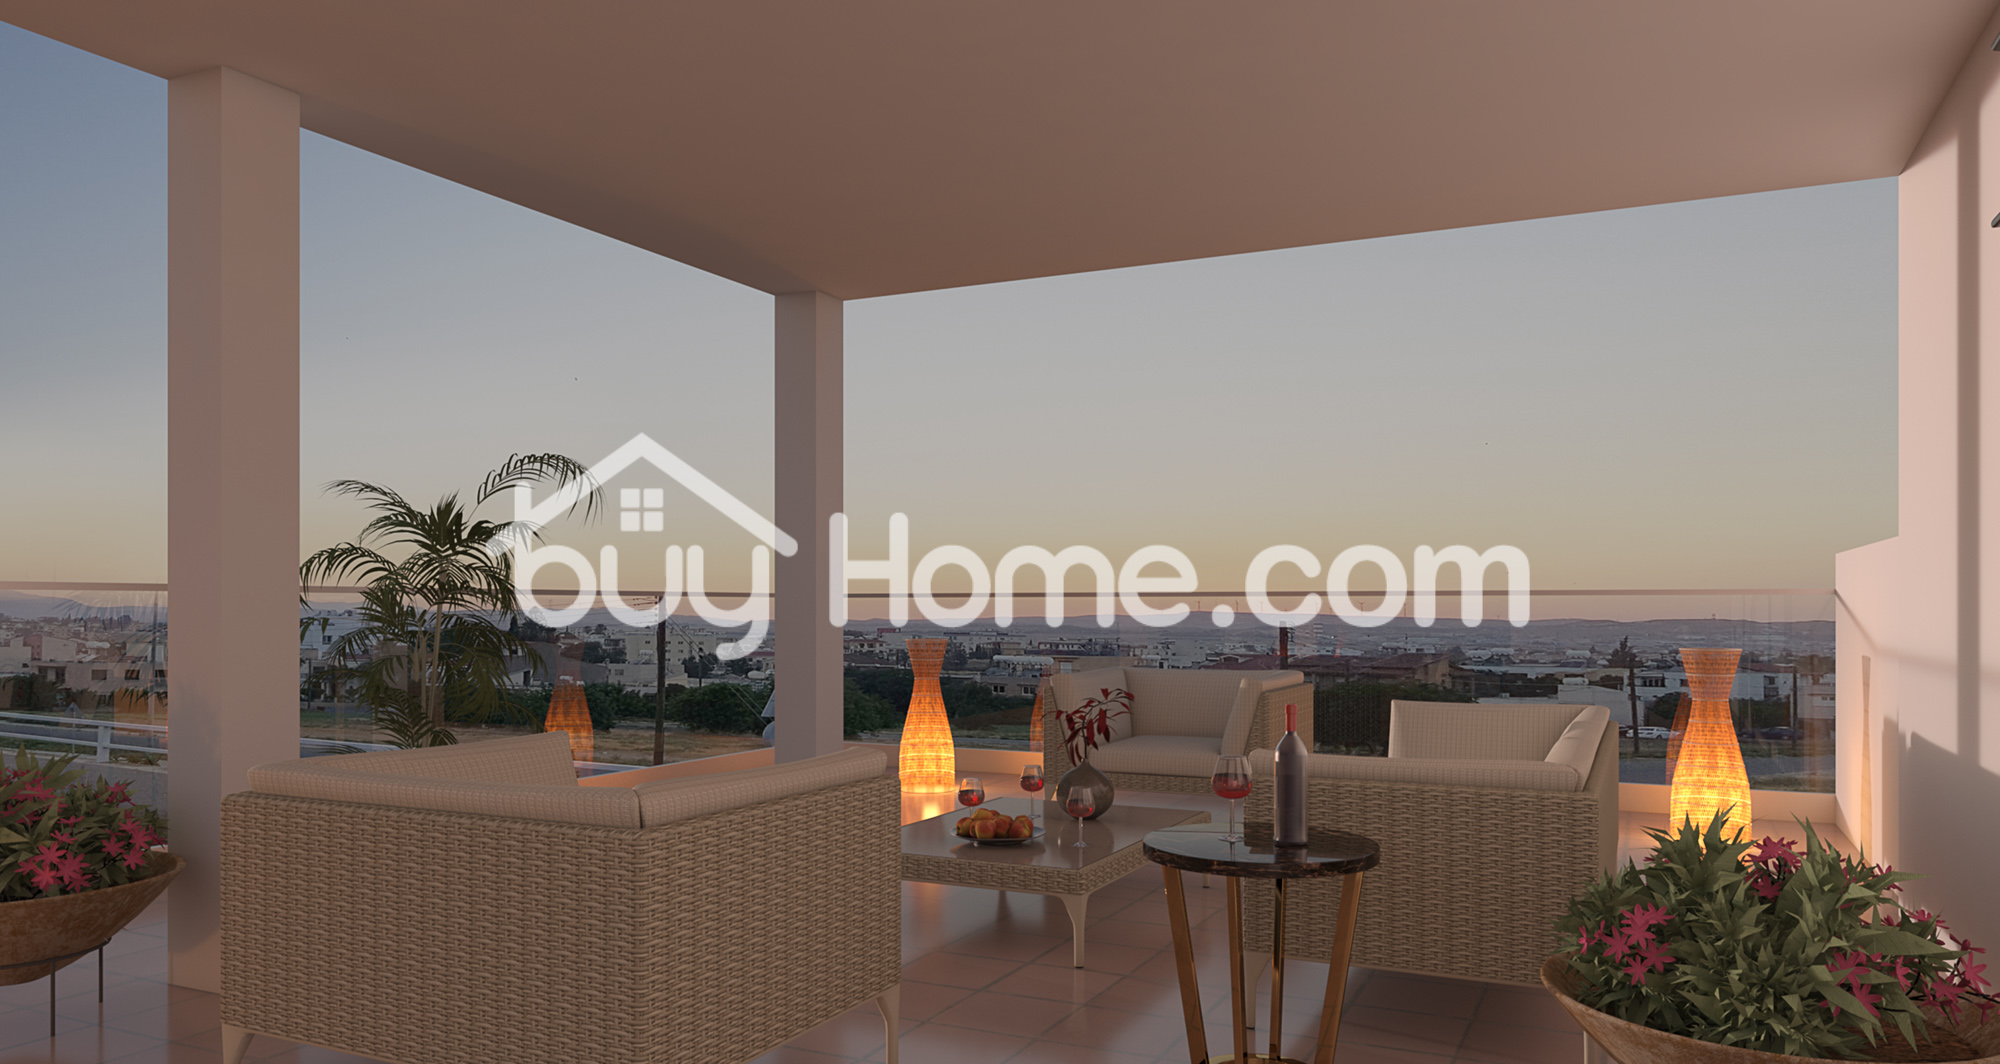 2 BDR Top floor apartment with roof garden | BuyHome